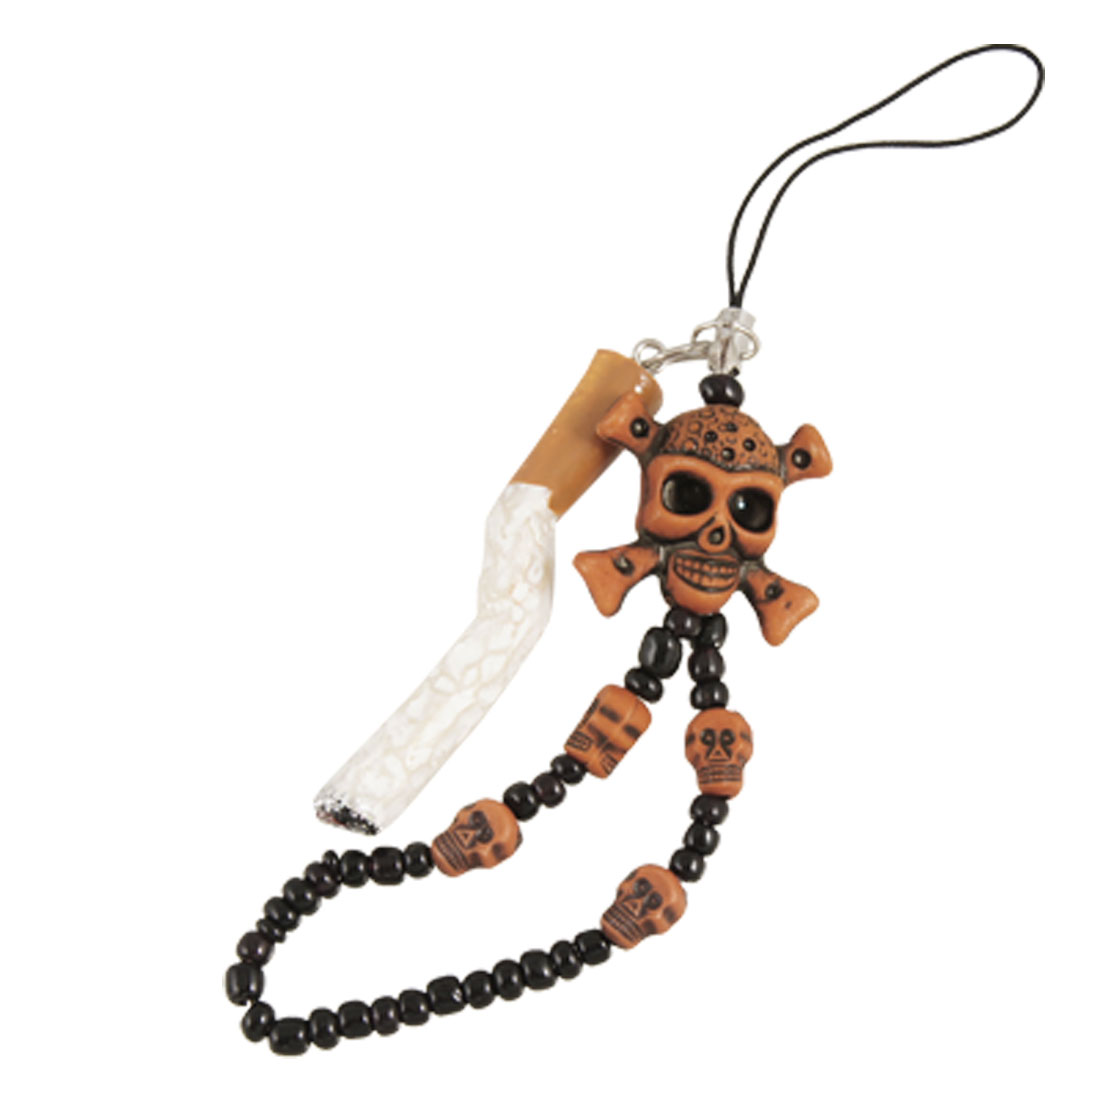 Brown Skull Pendant Charm Strap 5 Pcs for Mobile Phone